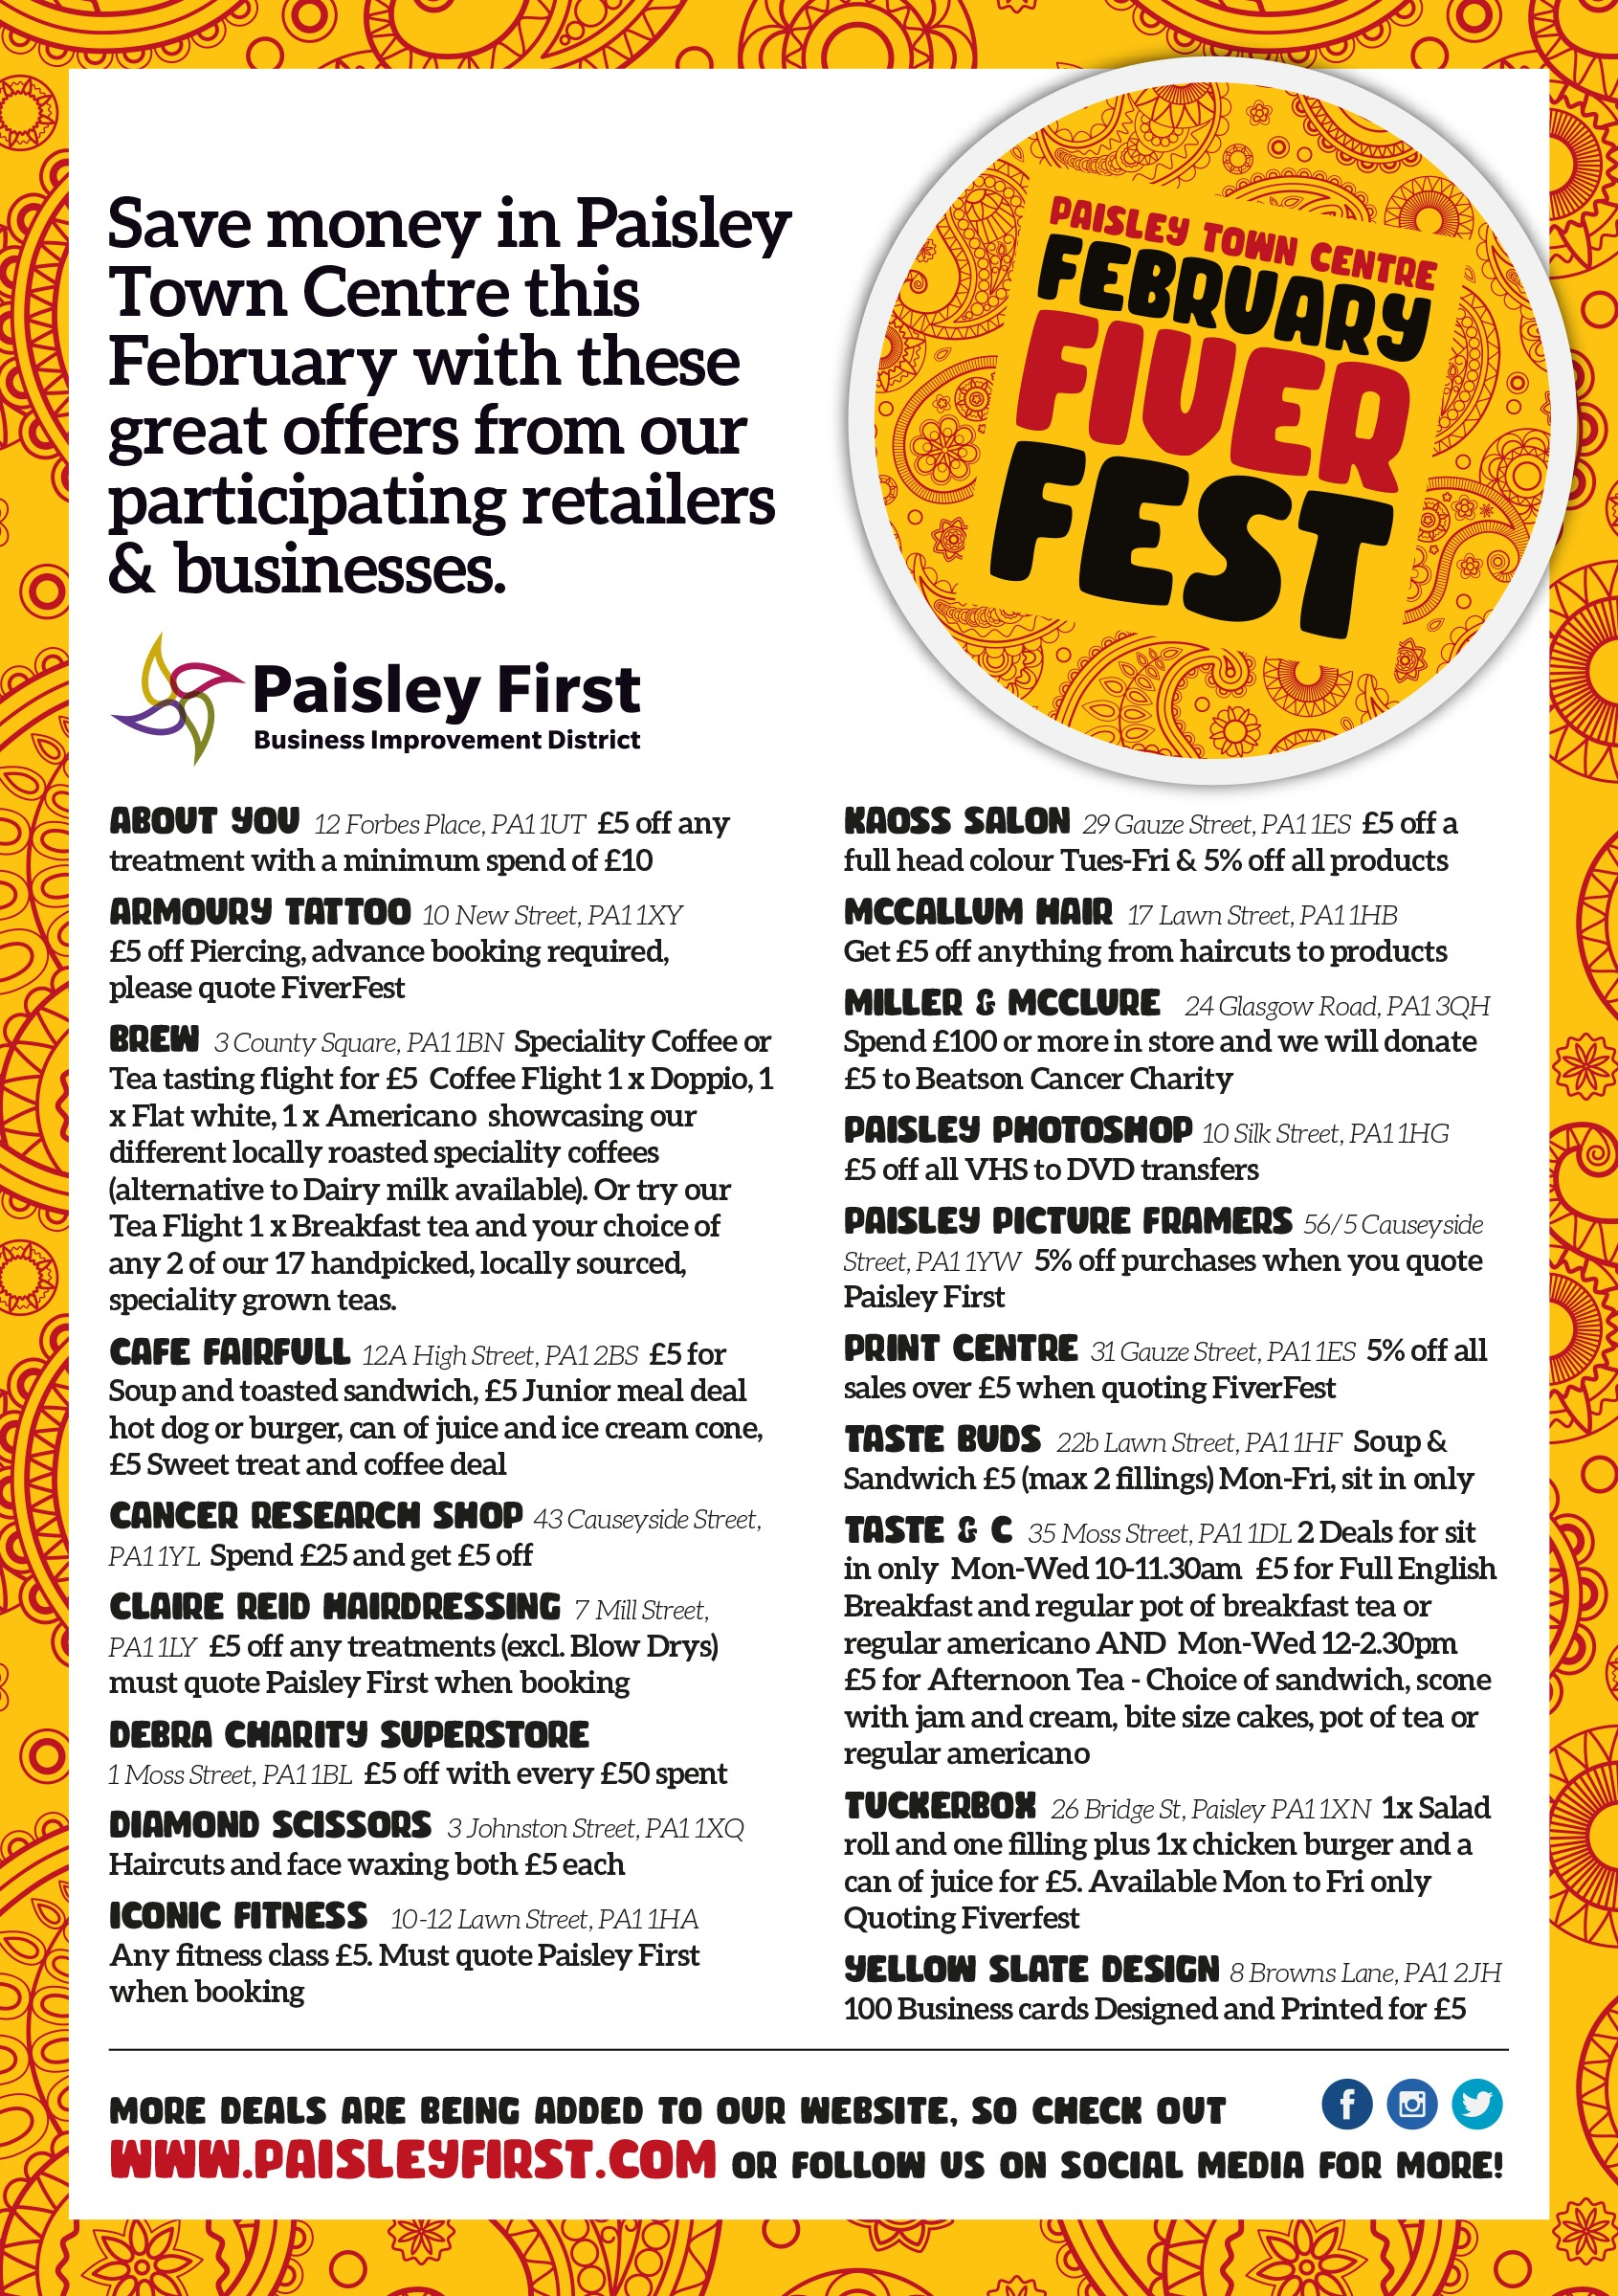 Paisley-First-February-Fiver-Fest-28-01-2020-1